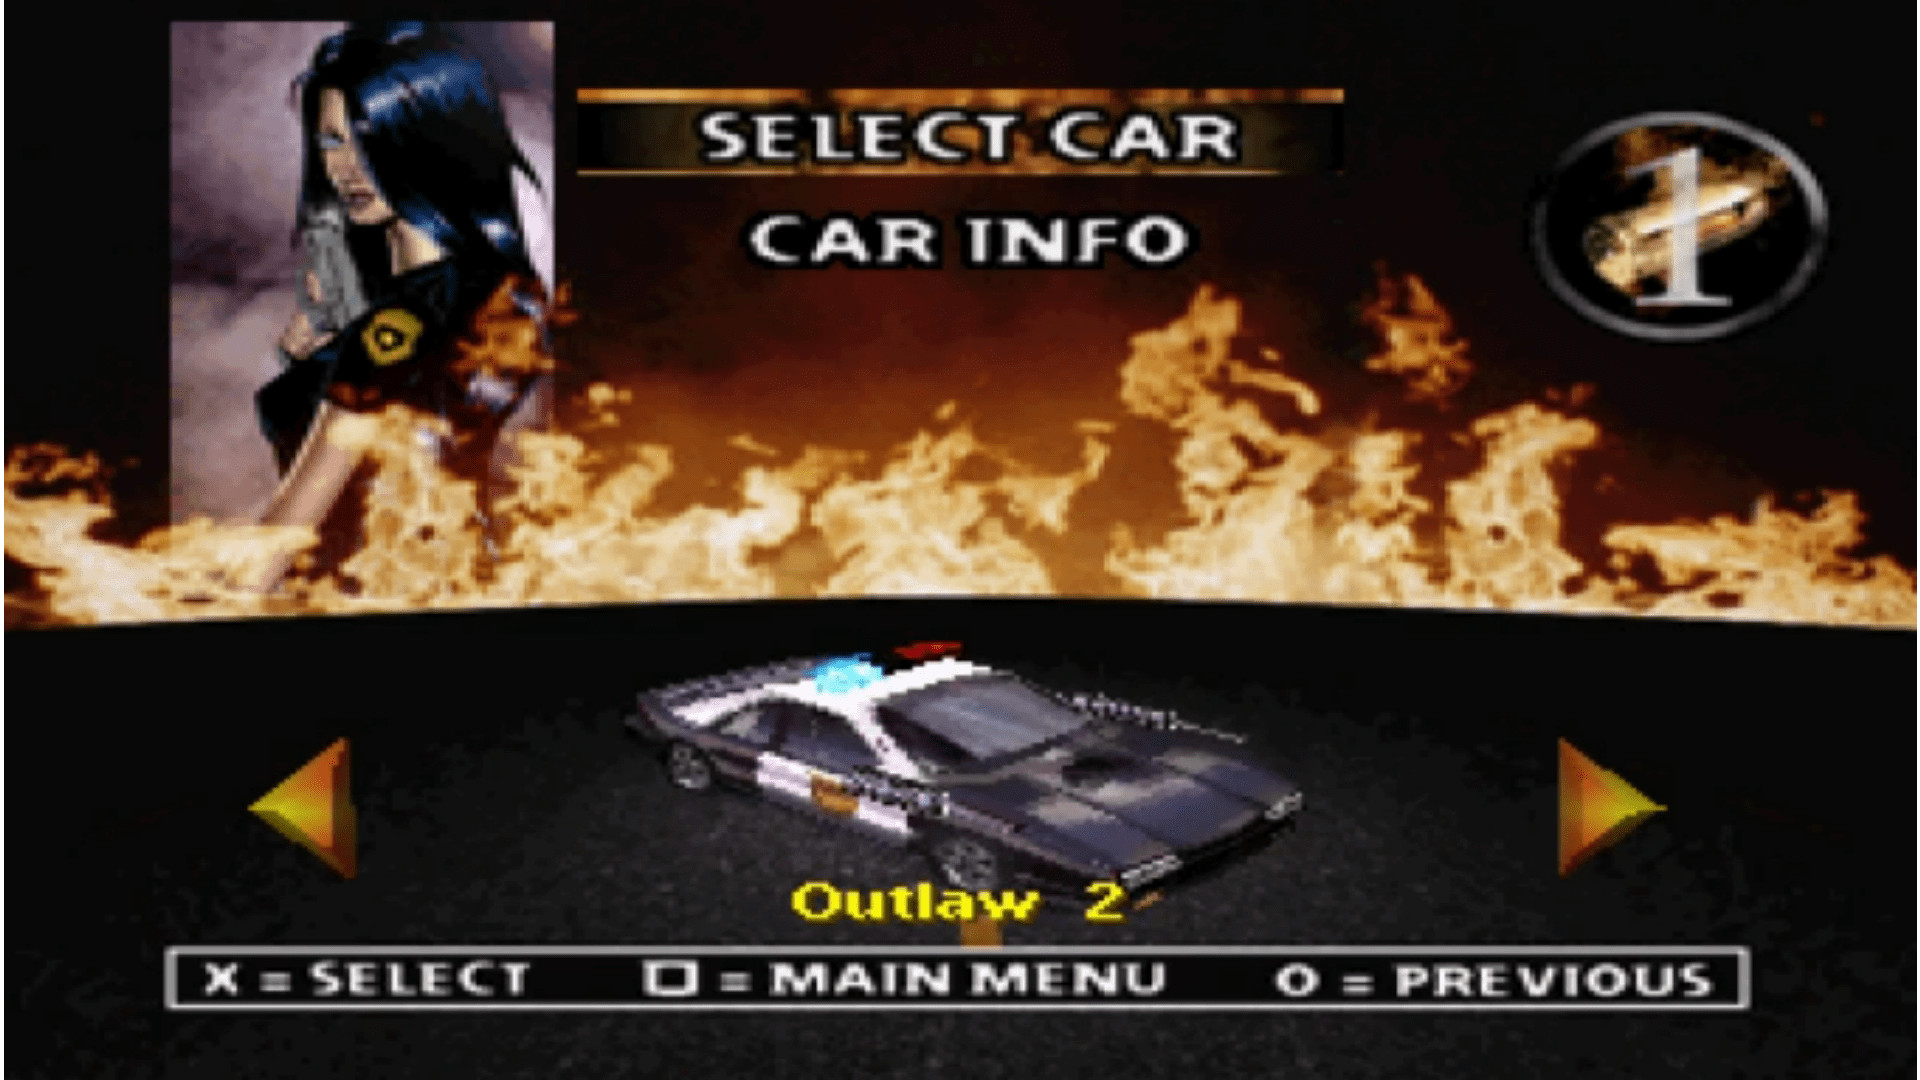 1920x1080 Outlaw/ Outlaw2: this car is almost always some sort of police cruiser,  with the exception to black and its sequel are swat style vehicles.